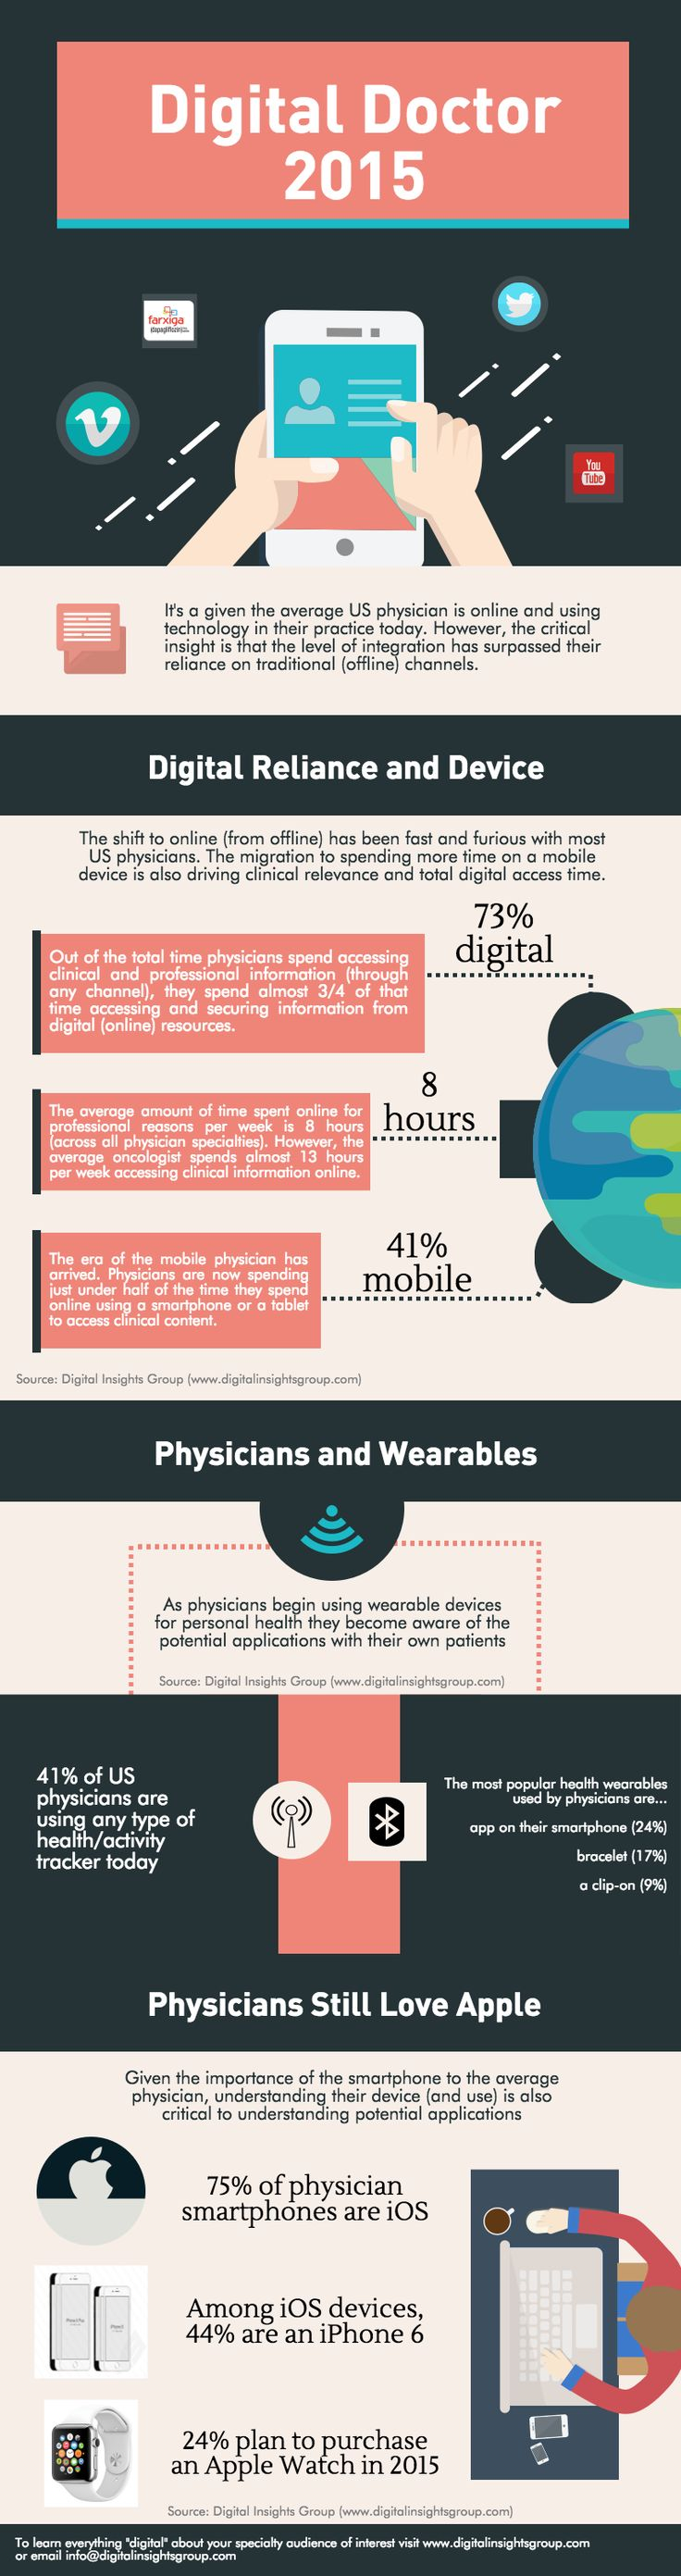 Infographic: A deep dive into the impact of tech on non-personal promotion by pharma